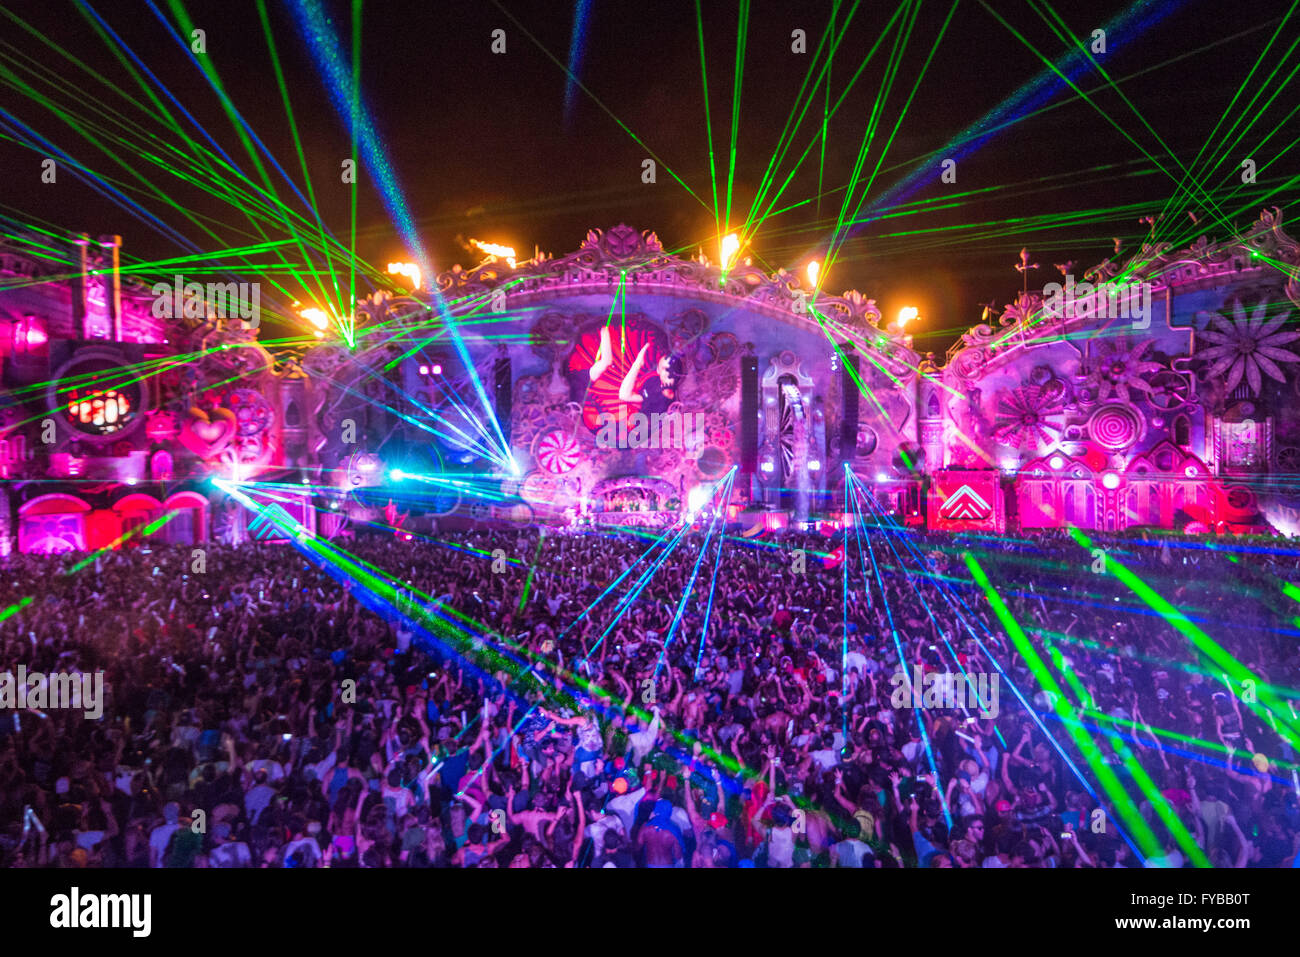 ITU, SP - 22.04.2016: TOMORROWLAND Brasilien 2016 - 2. Auflage von Tomorrowland Brasilien 2016, die internationale Stockbild